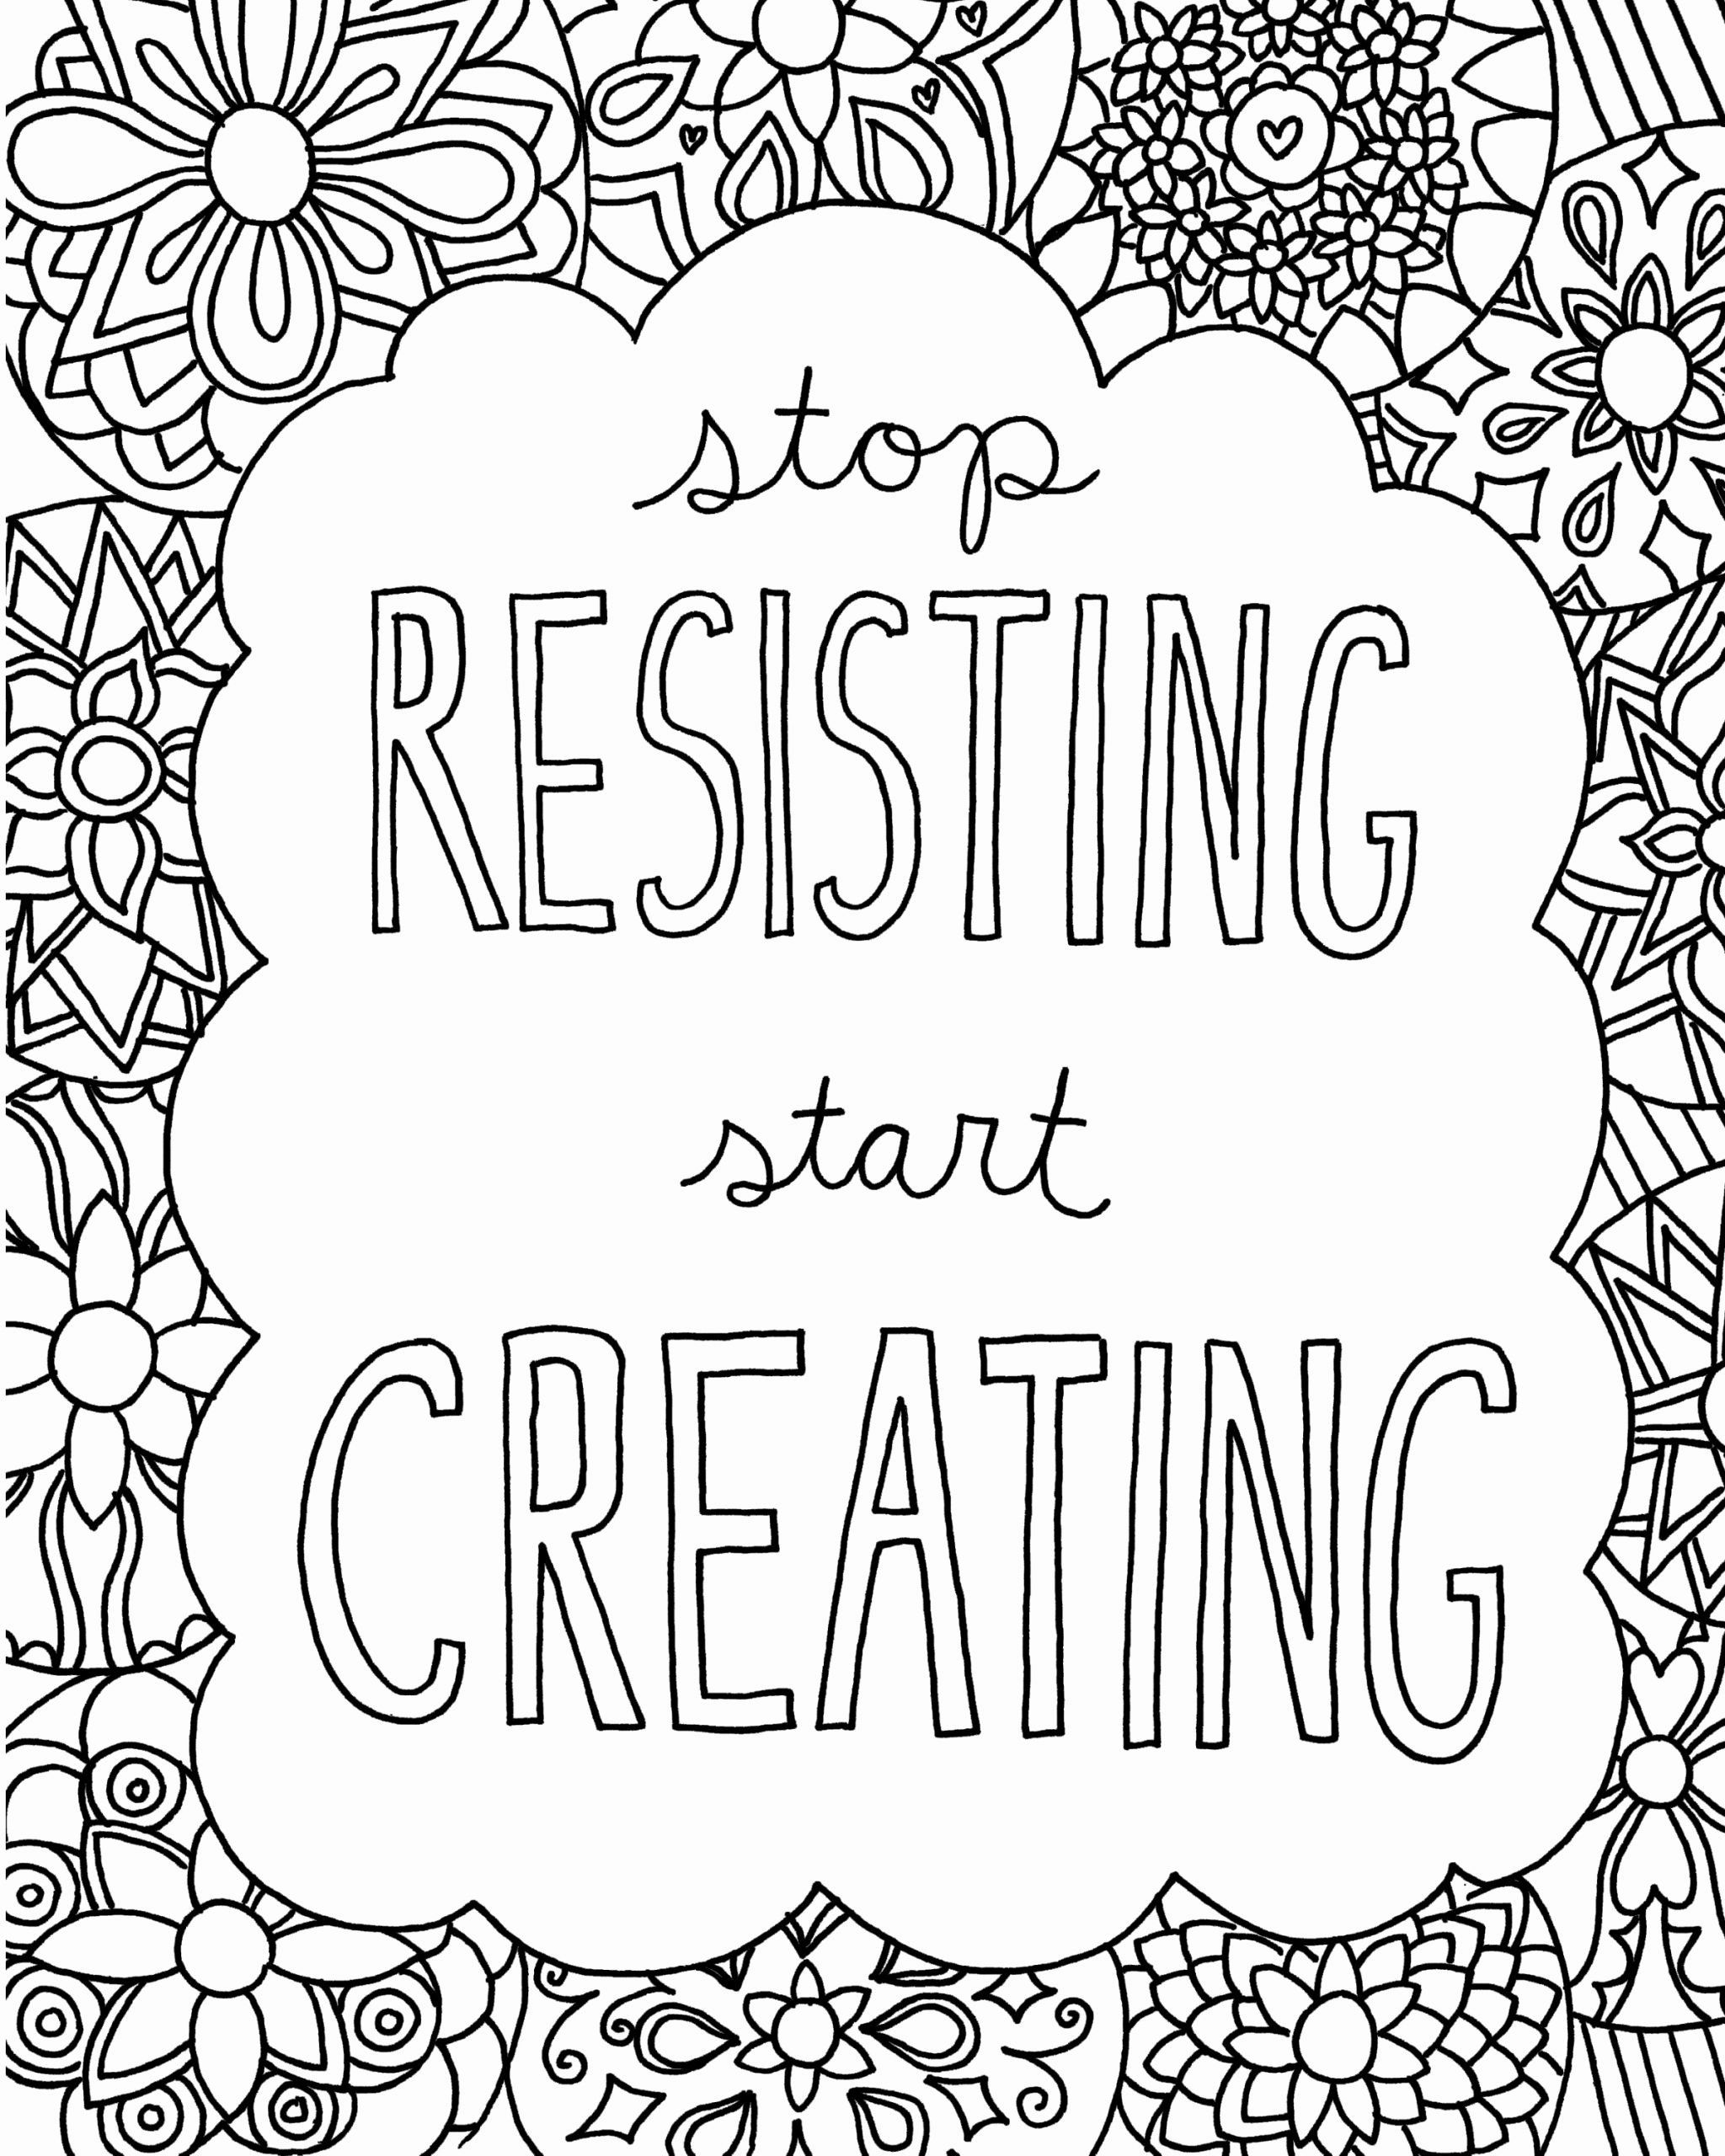 coloring timeless creations image result for free printable christmas coloring sheets creations timeless coloring